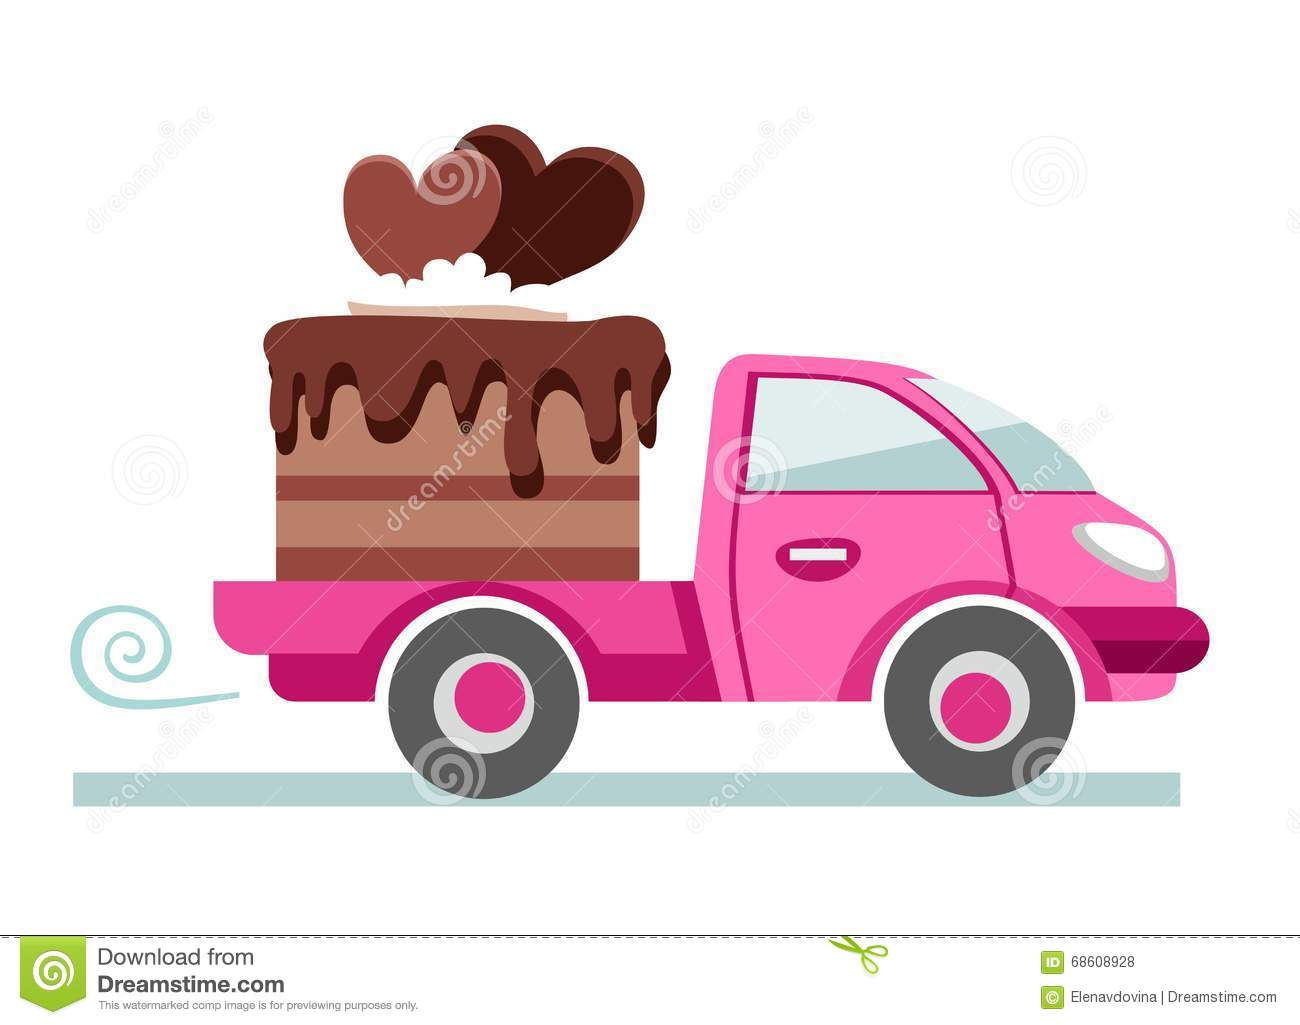 Cakes, Pastries, Shipping, Vector Image. Stock Vector - Image ...